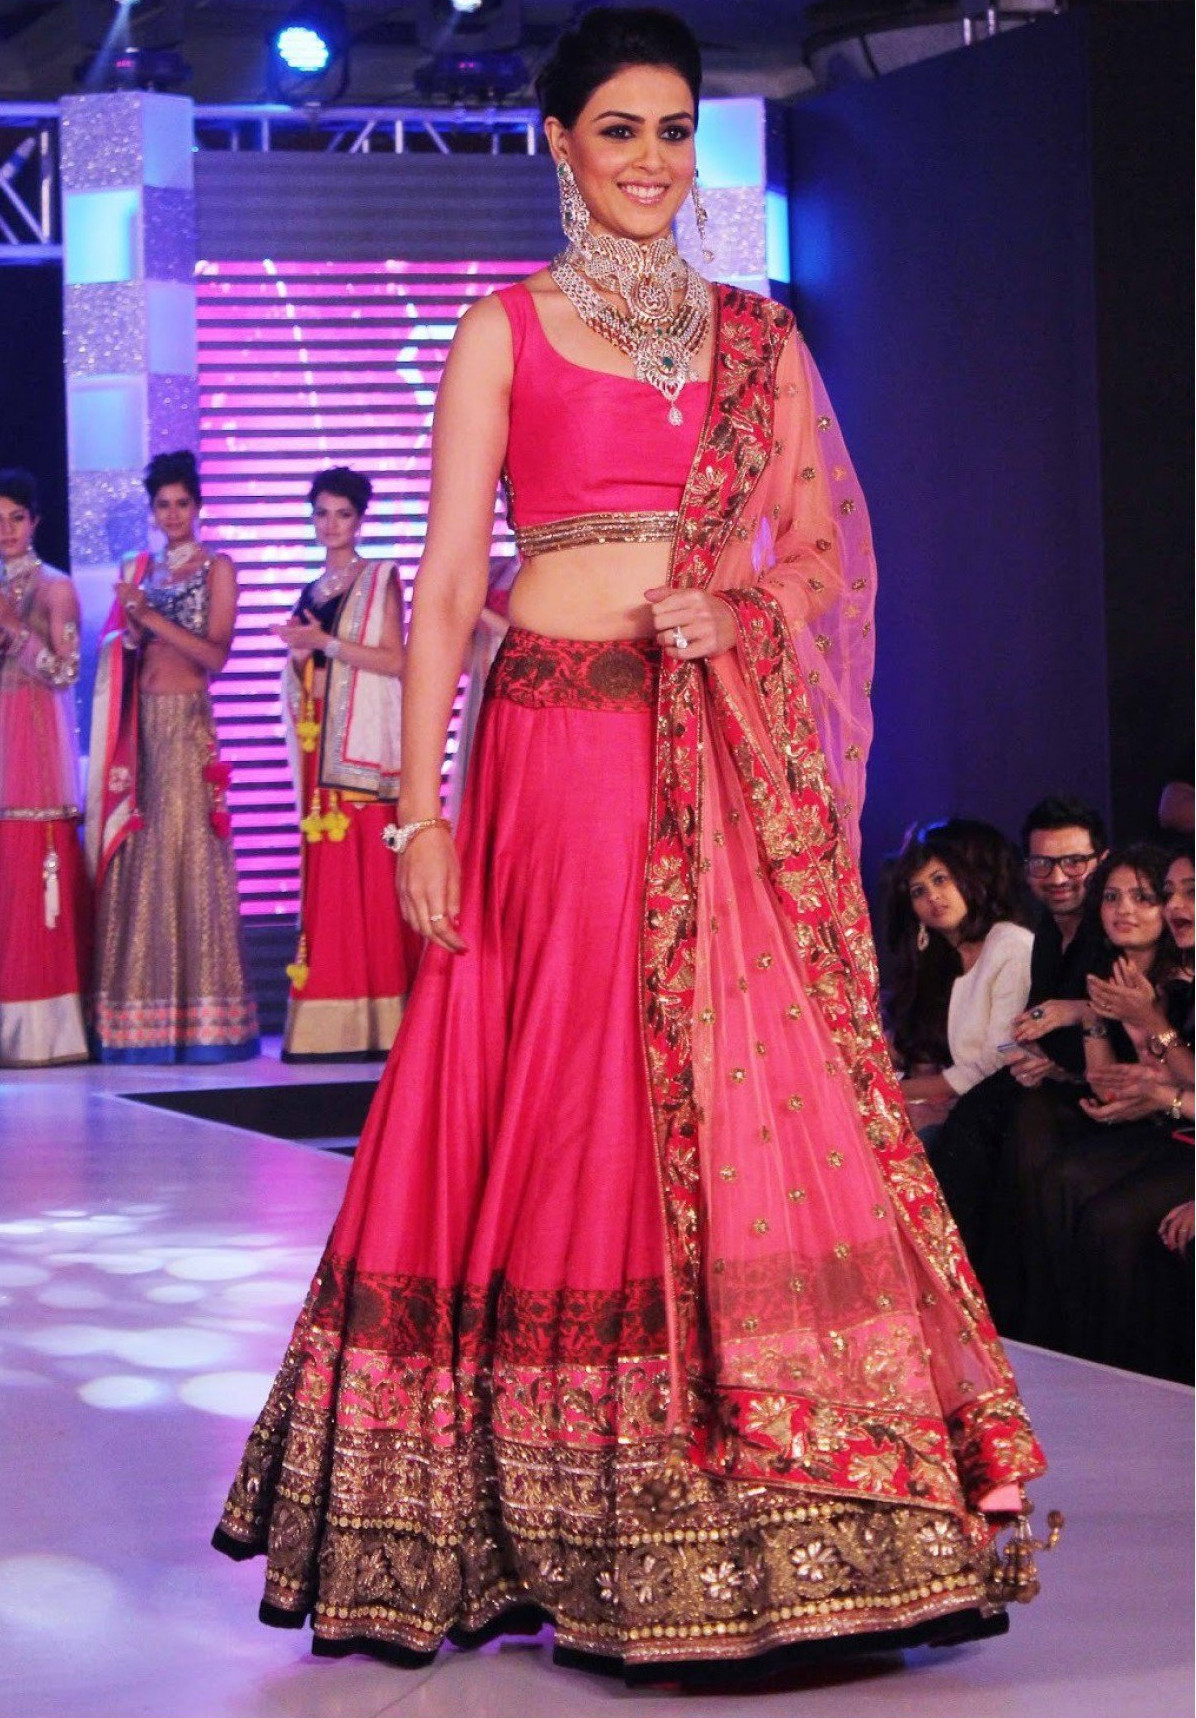 73 Best Celebrity Lehengas images in 2019 | Indian clothes ...